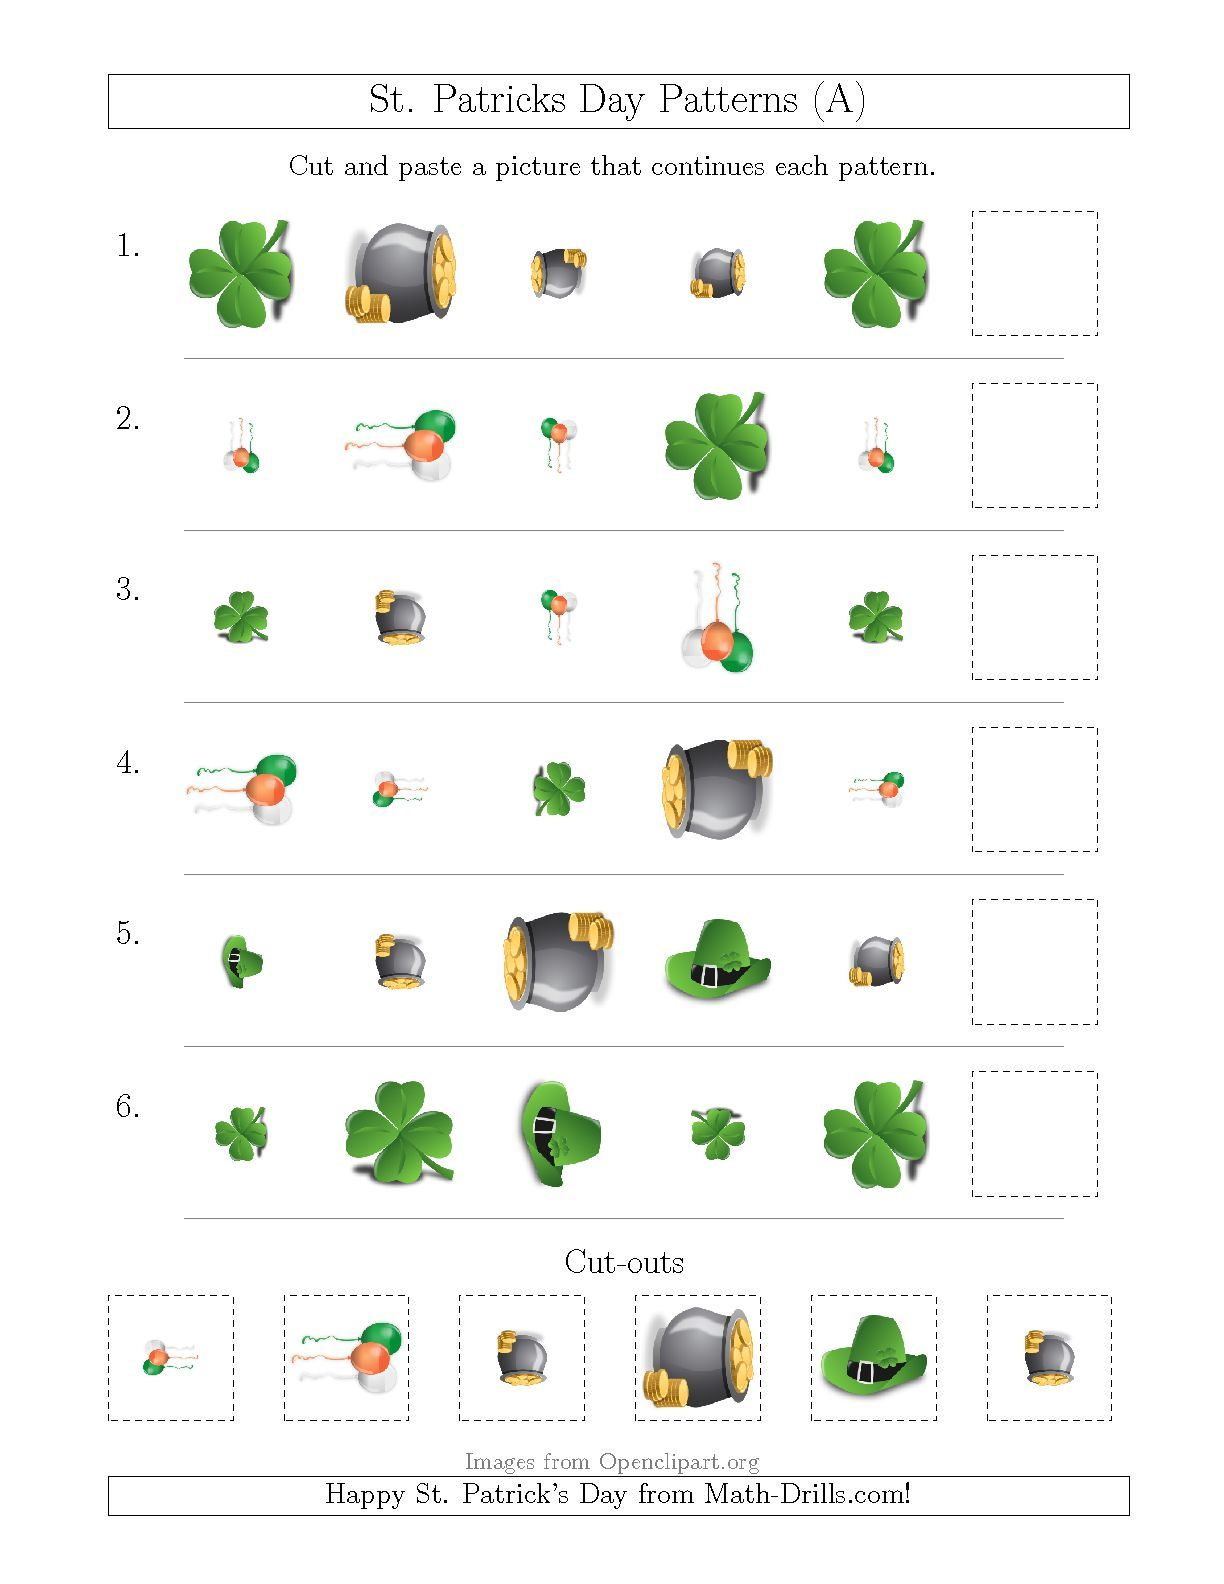 New St Patrick S Day Picture Patterns With Shape Size And Rotation Attributes A Math